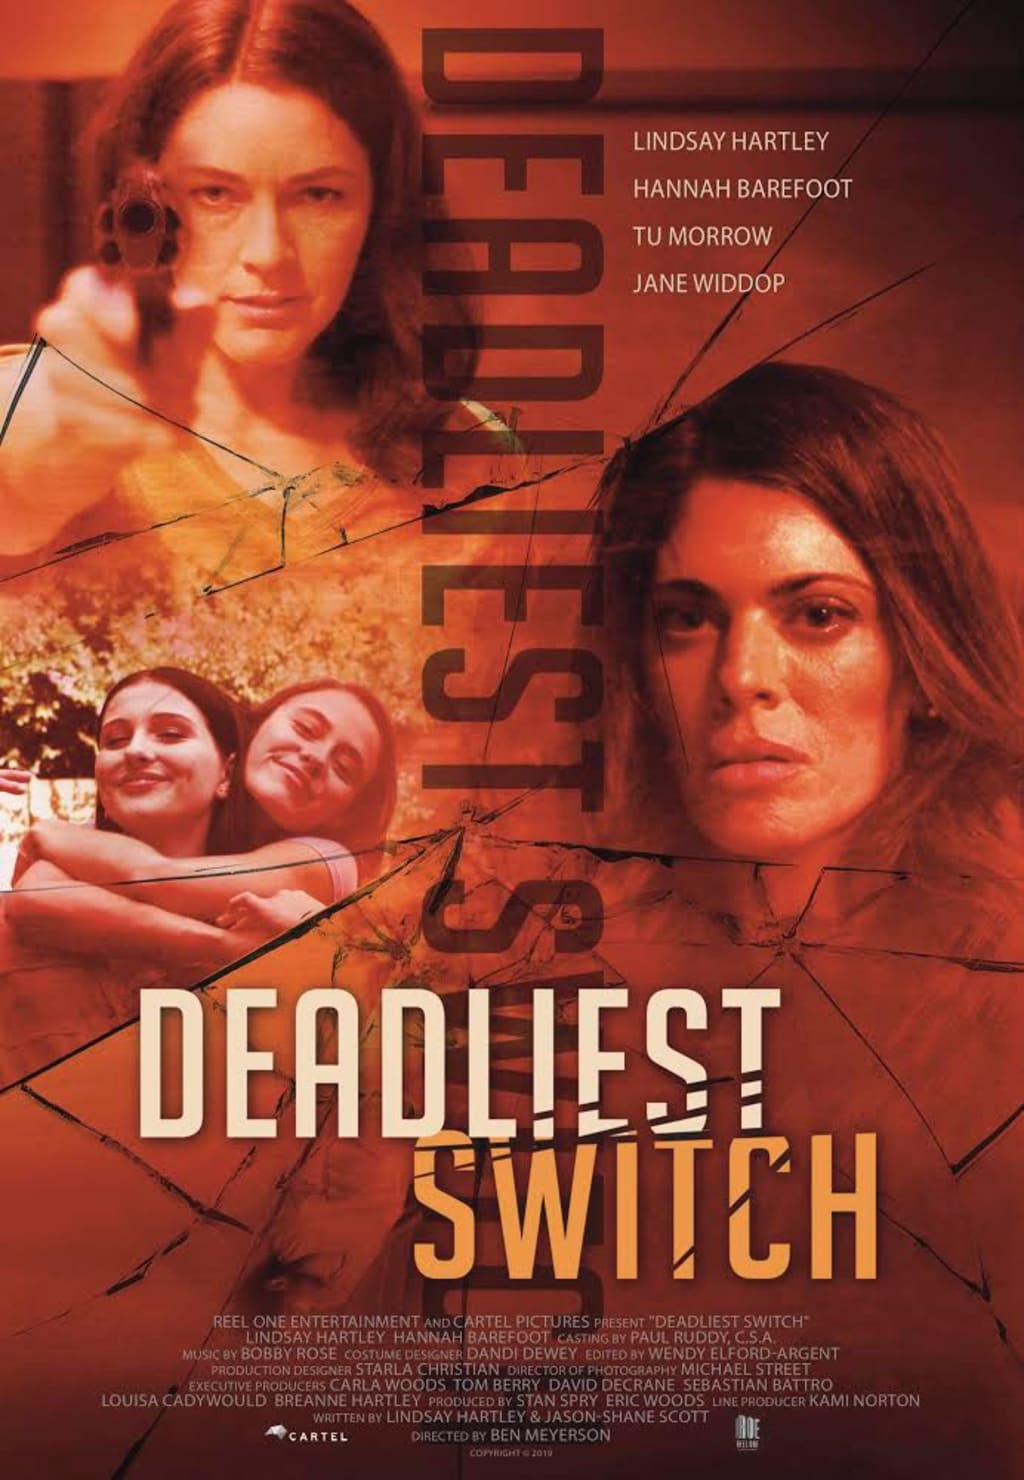 Lifetime Review: 'Deadly Daughter Switch'